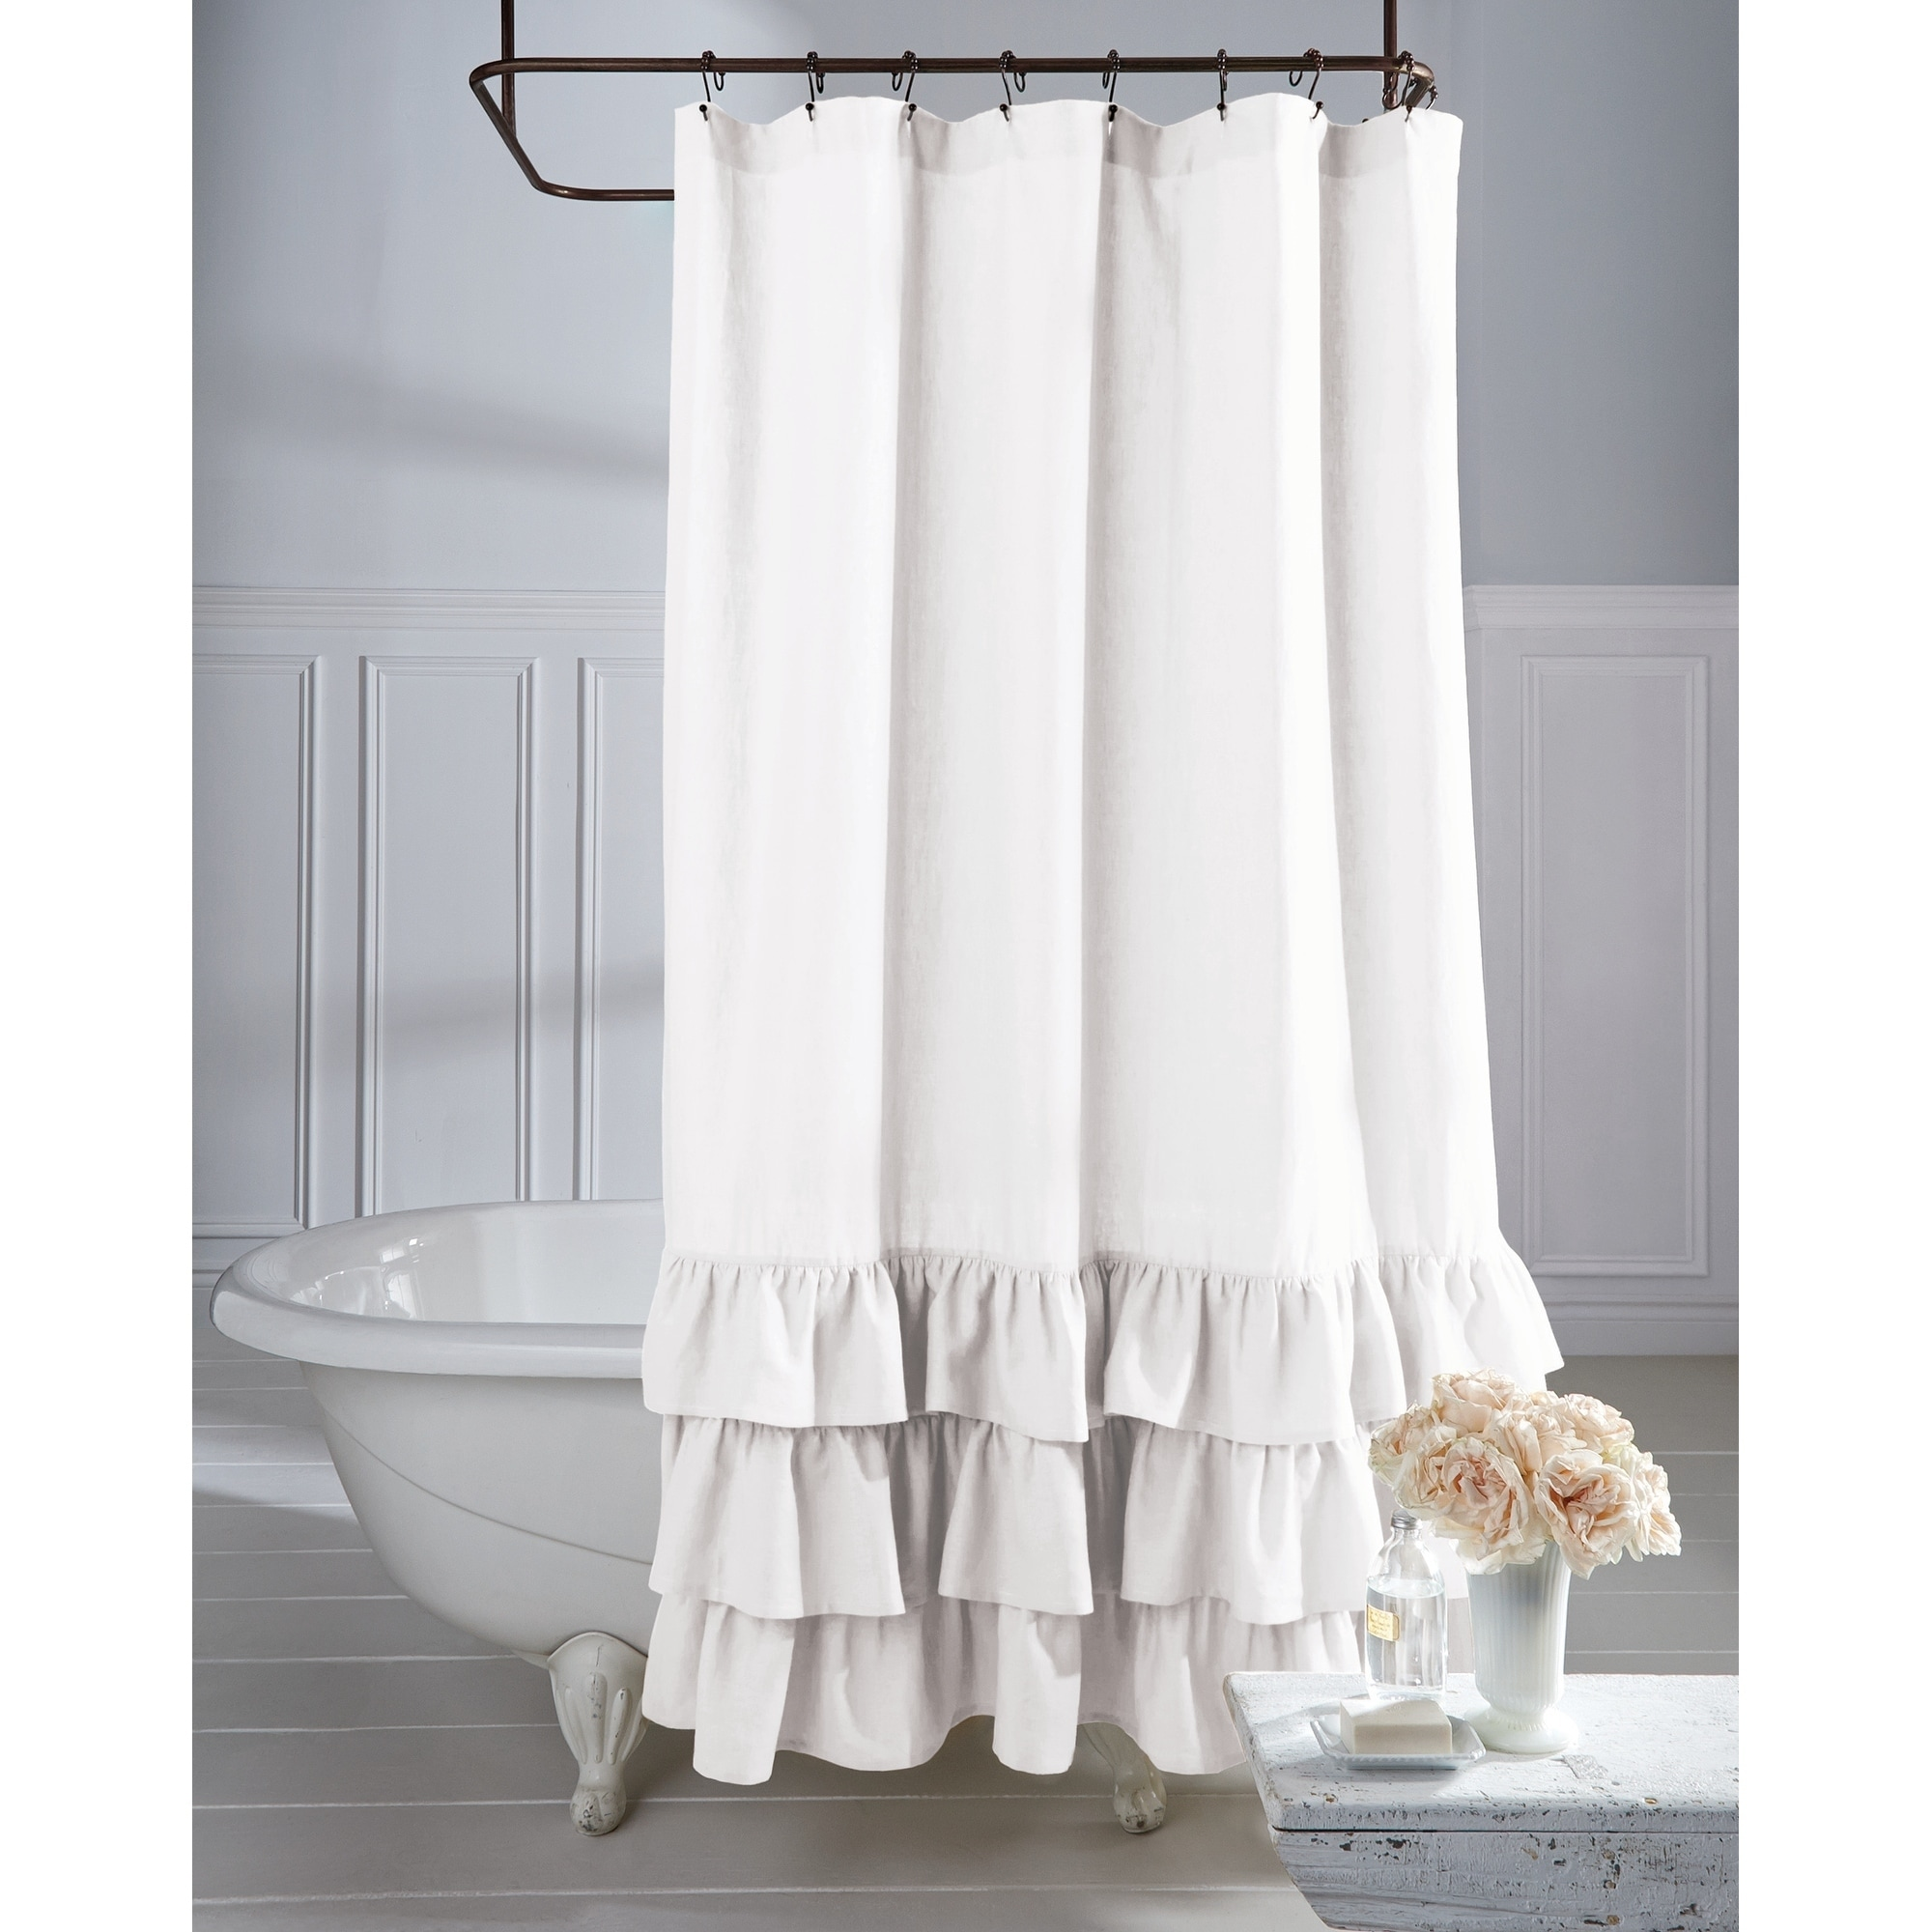 White Shower Curtains Find Great Shower Curtains